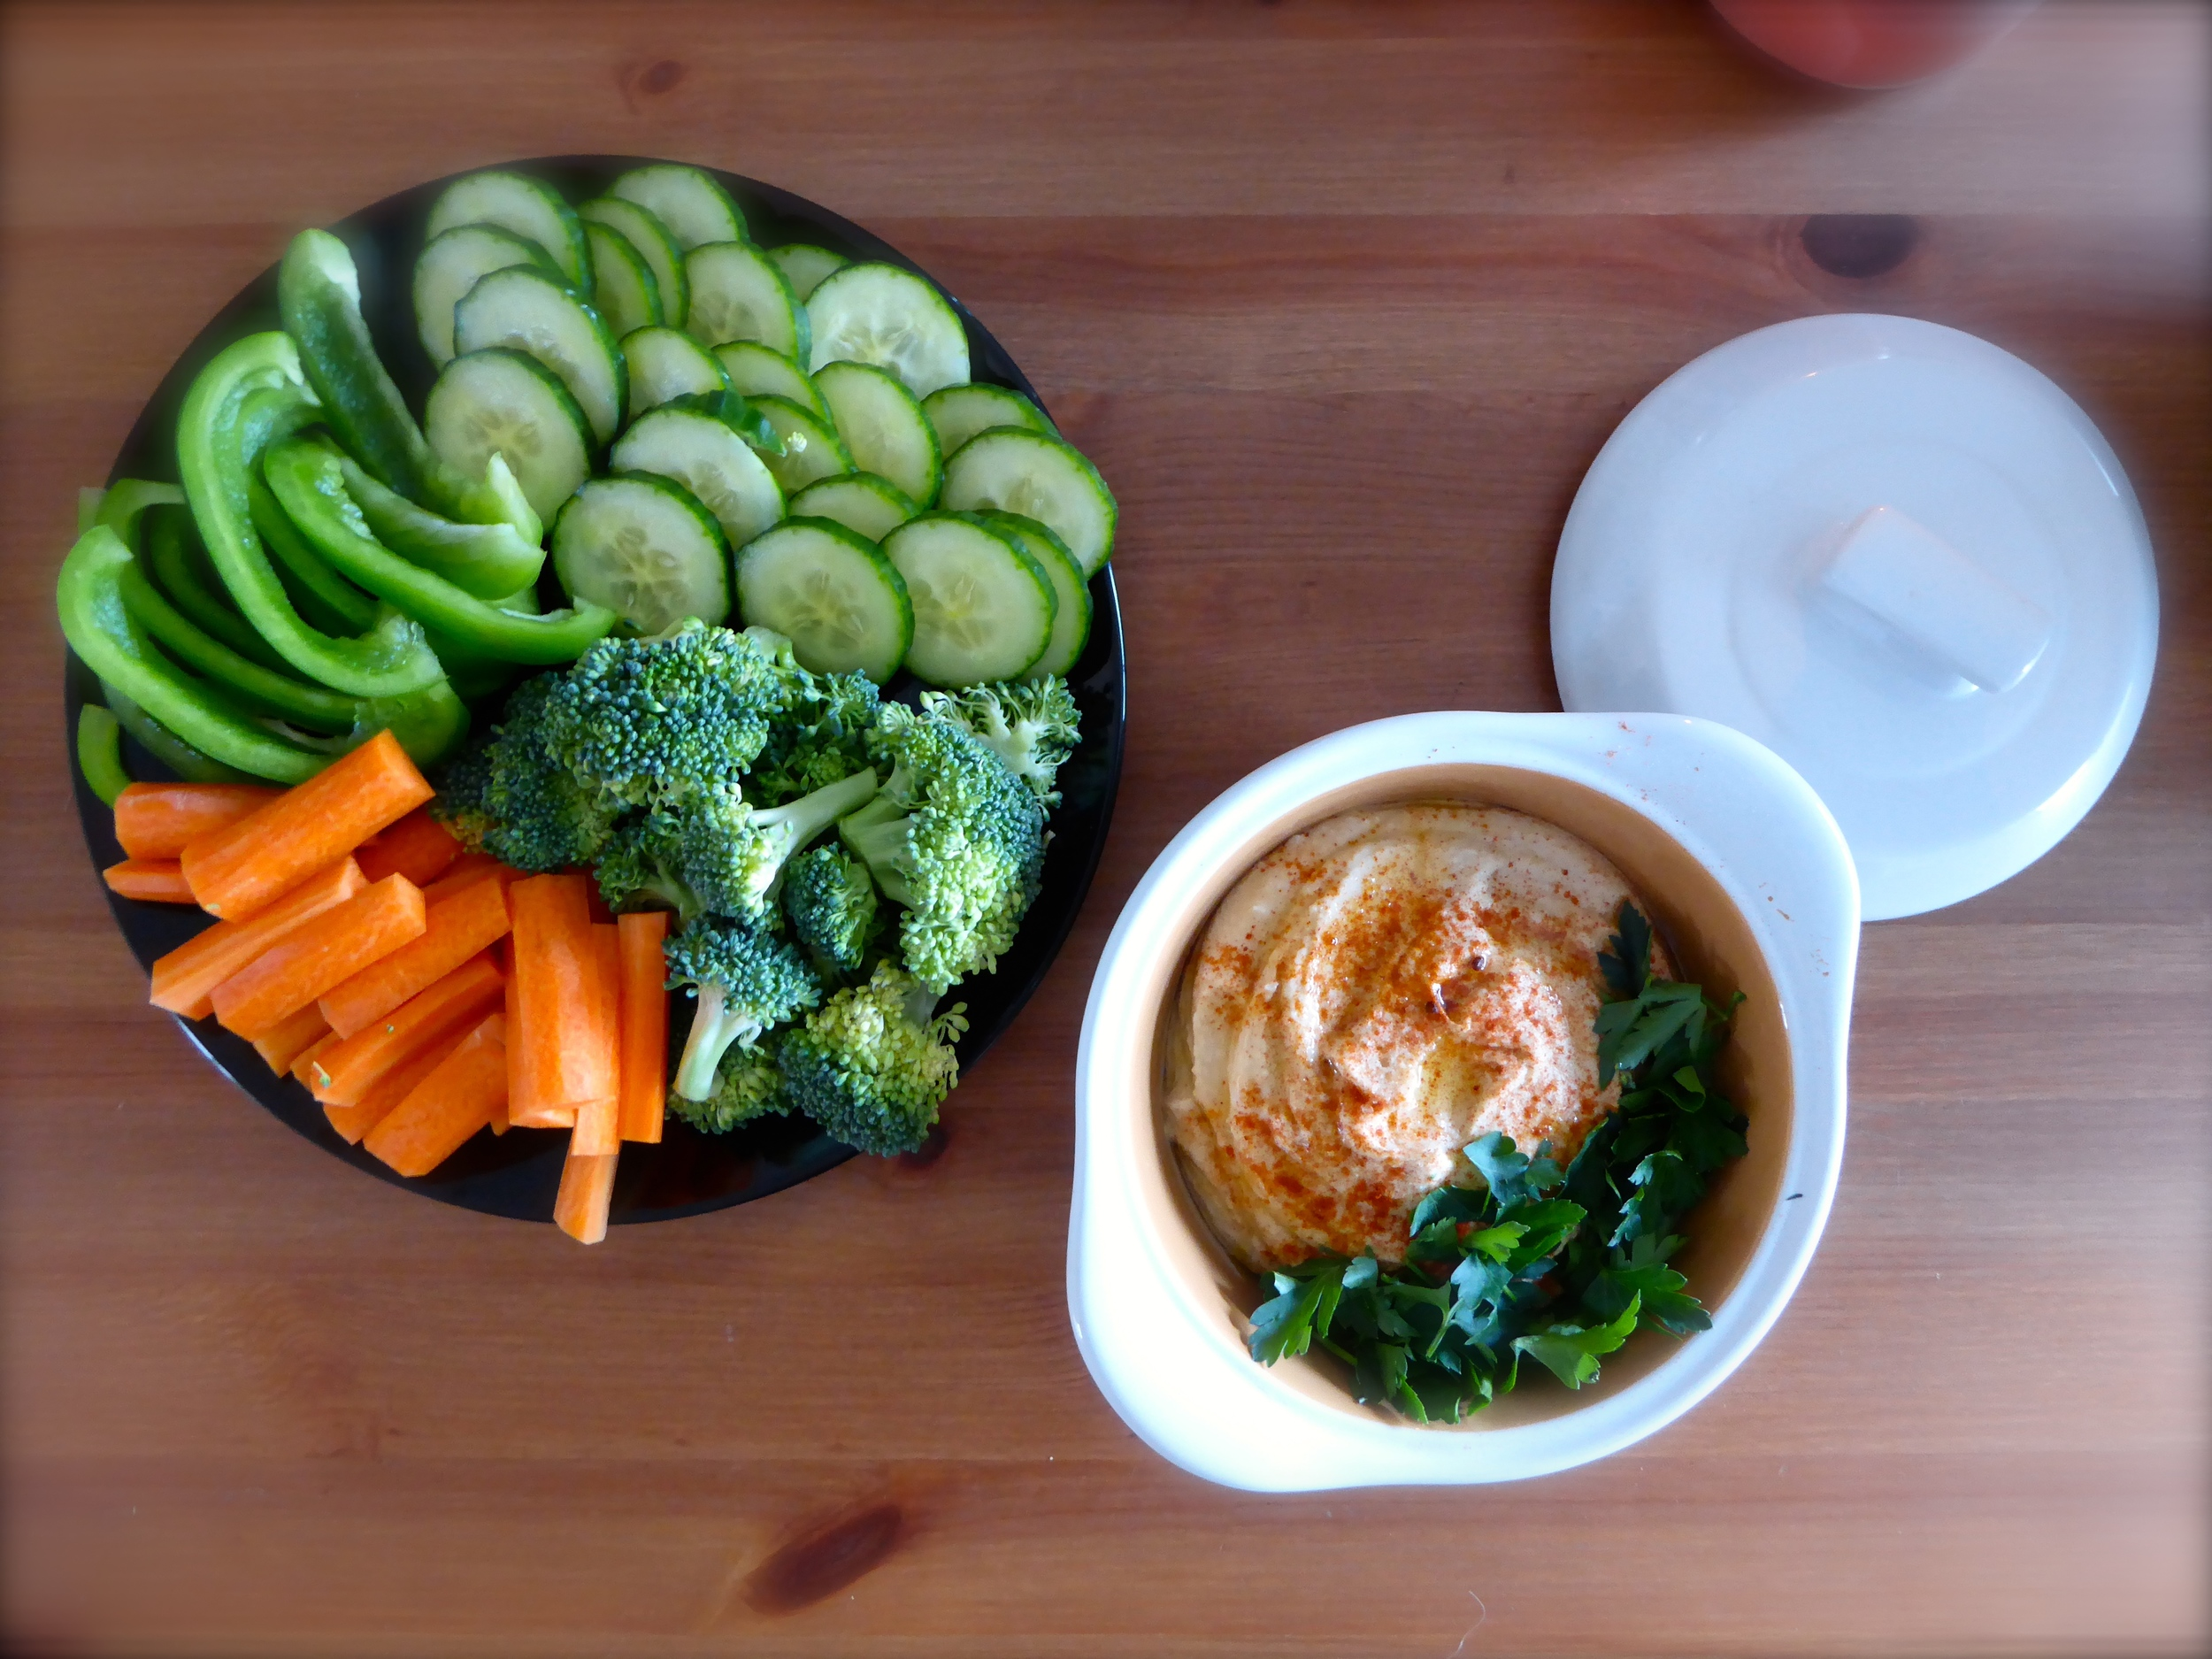 Creamy Hummus and Veg